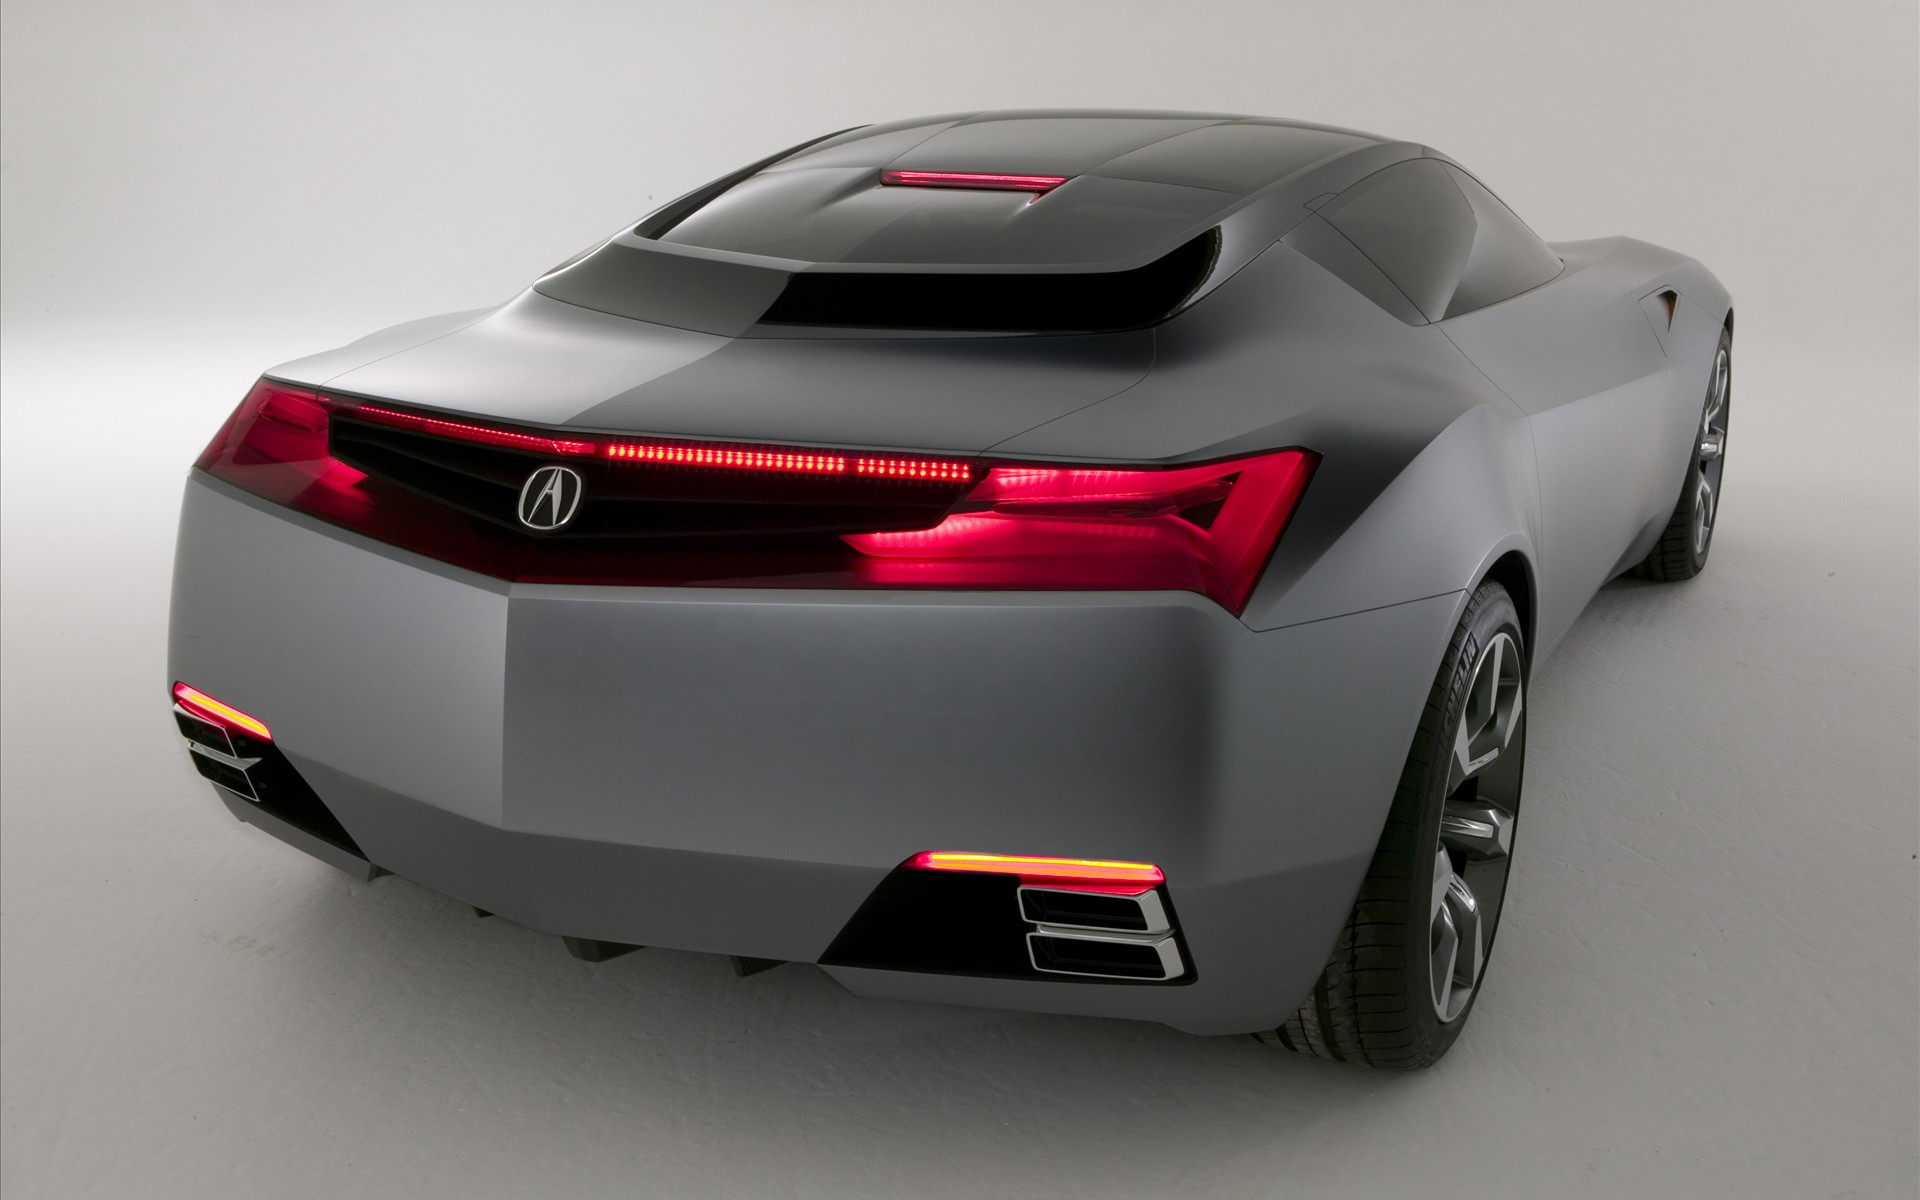 Worksheet. Acura Concept Car 4227242 1920x1200  All For Desktop